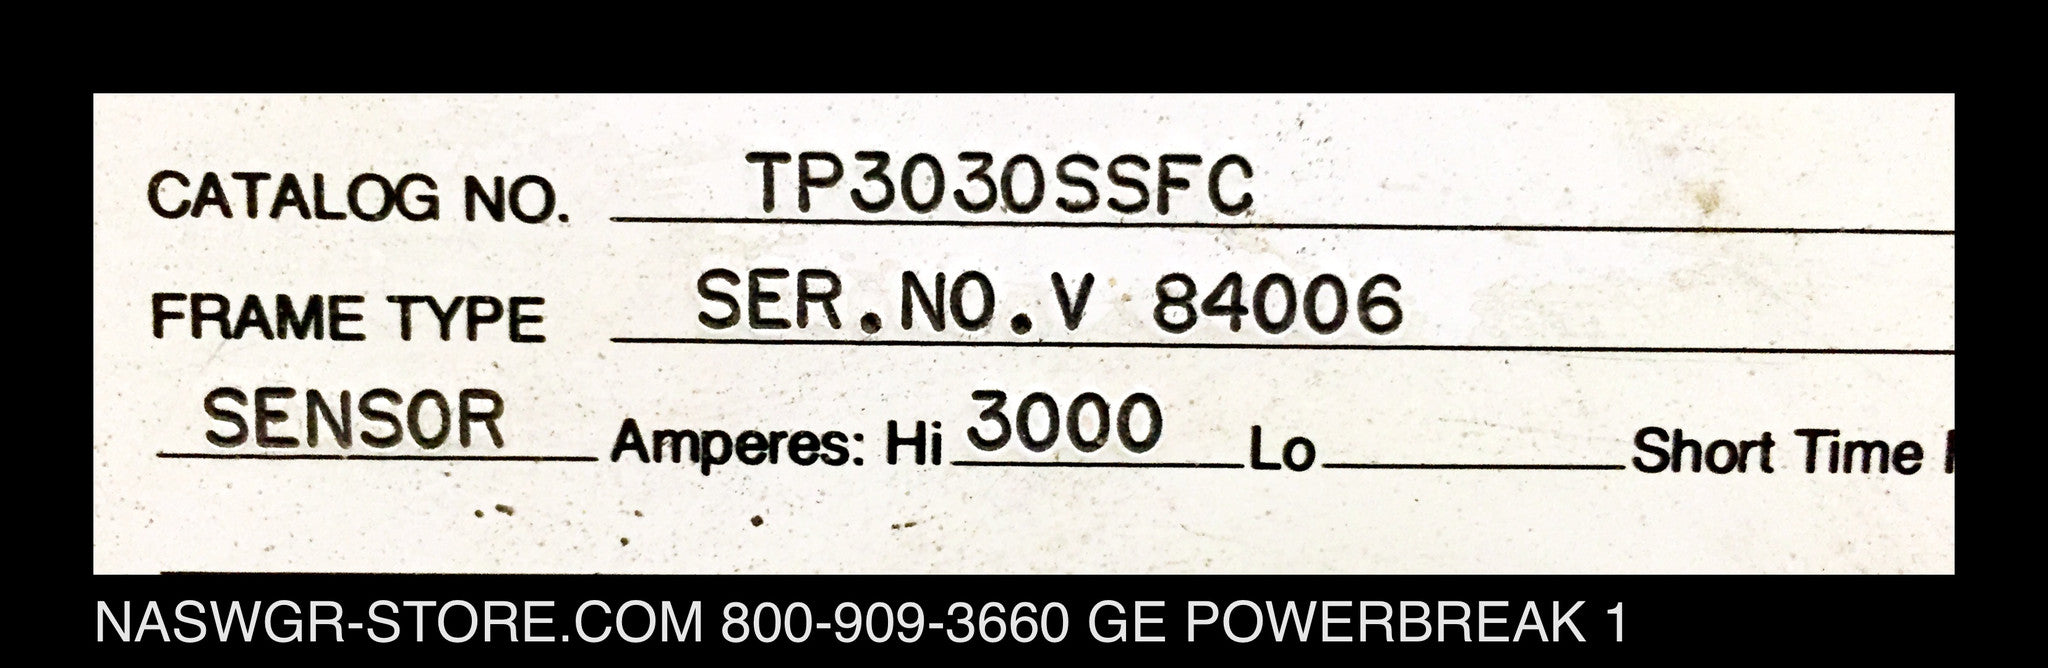 TP3030SSFC ~ GE TP3030SSFC Circuit Breaker PowerBreak I Houston Style Drawout